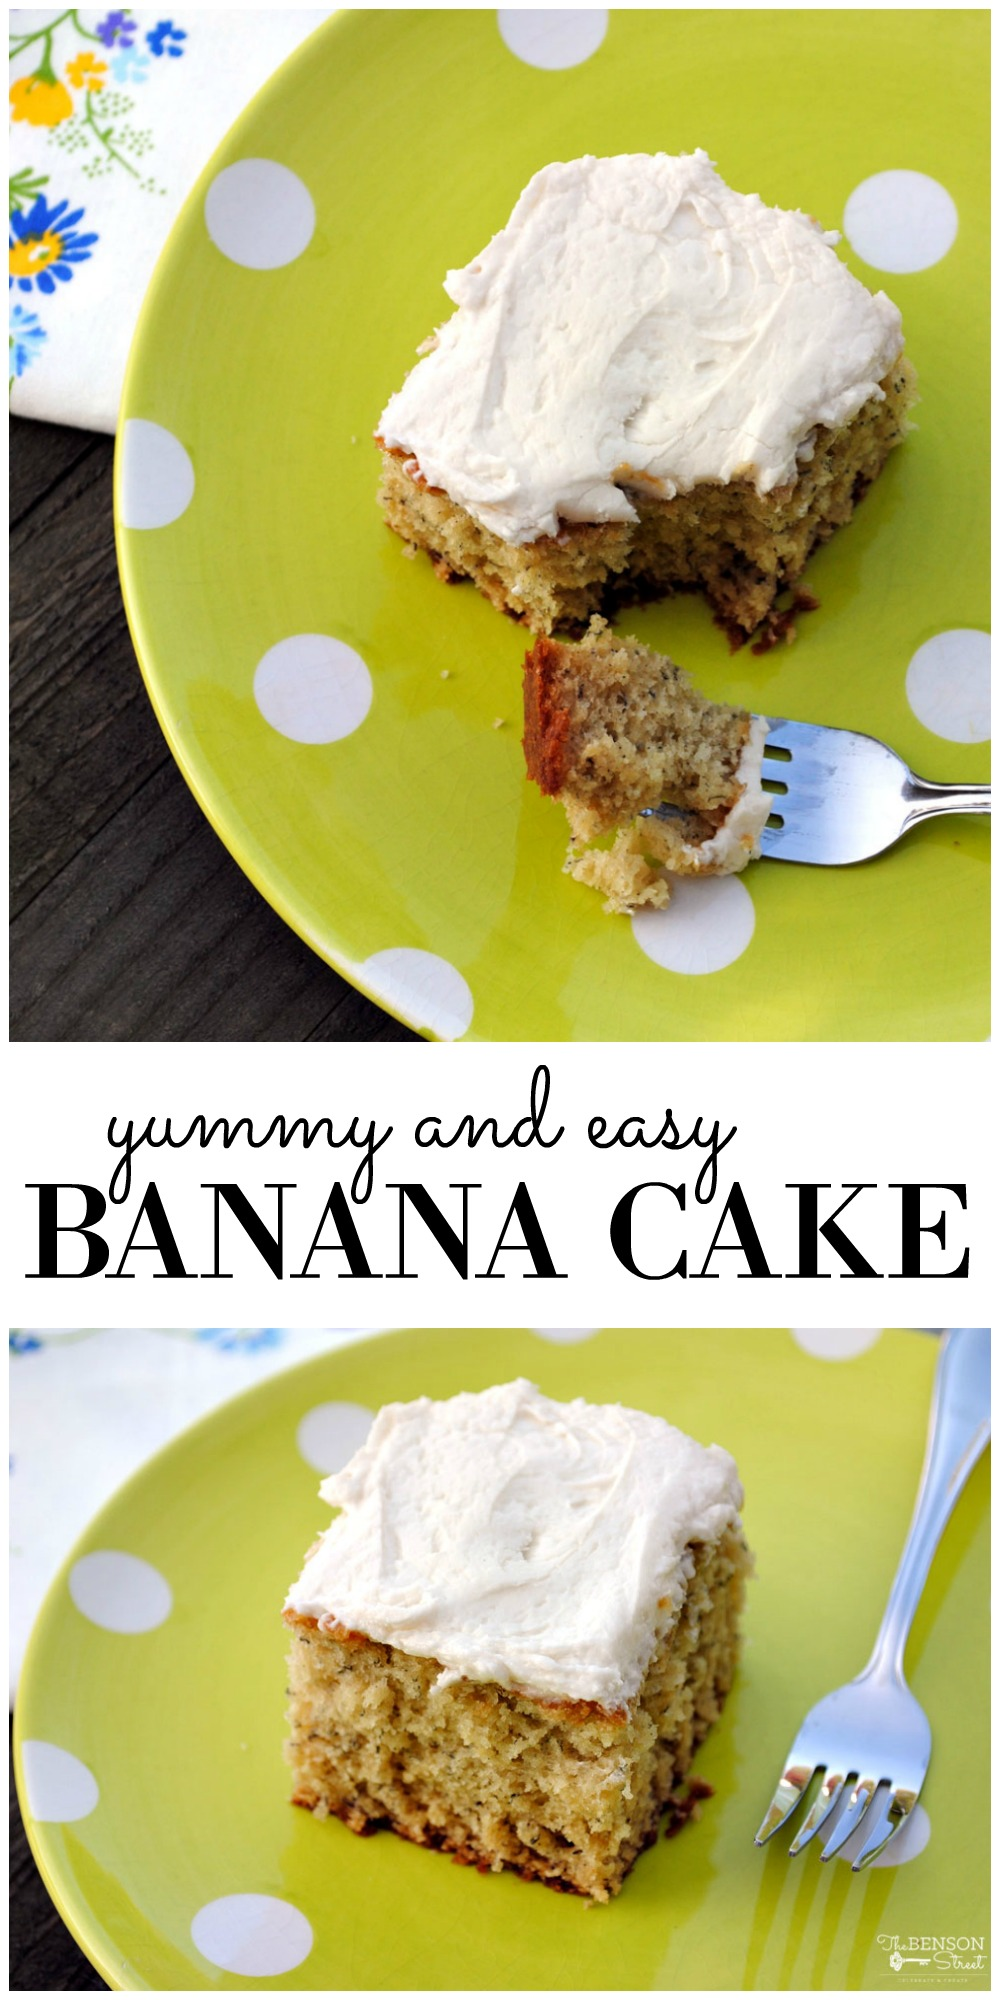 Use up ripe bananas to make a sweet and delicious treat. Yummy and easy banana cake with buttercream frosting recipe. Find it on thebensonstreet.com